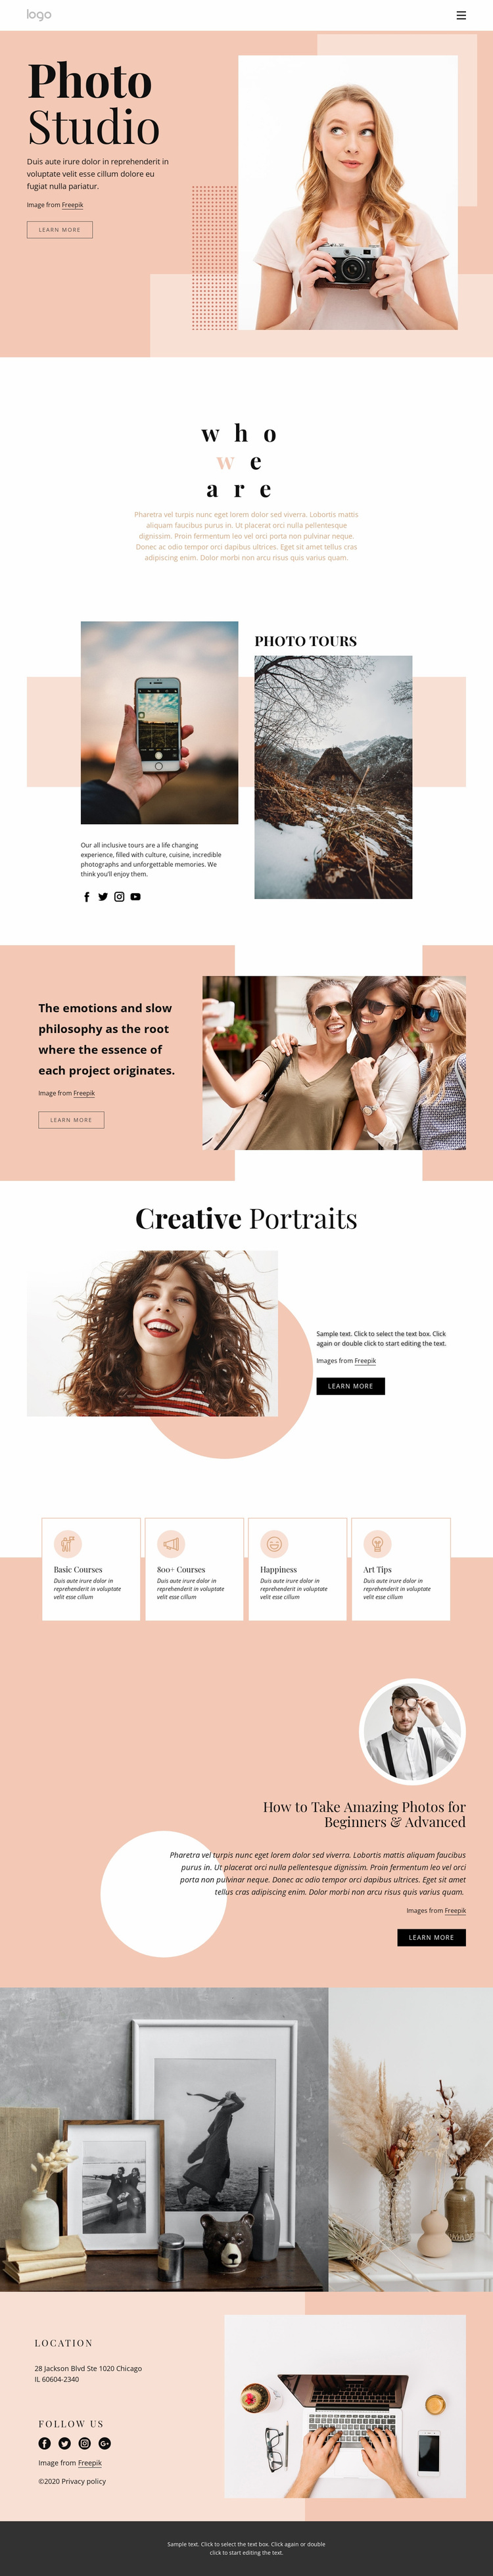 Photography courses Website Design